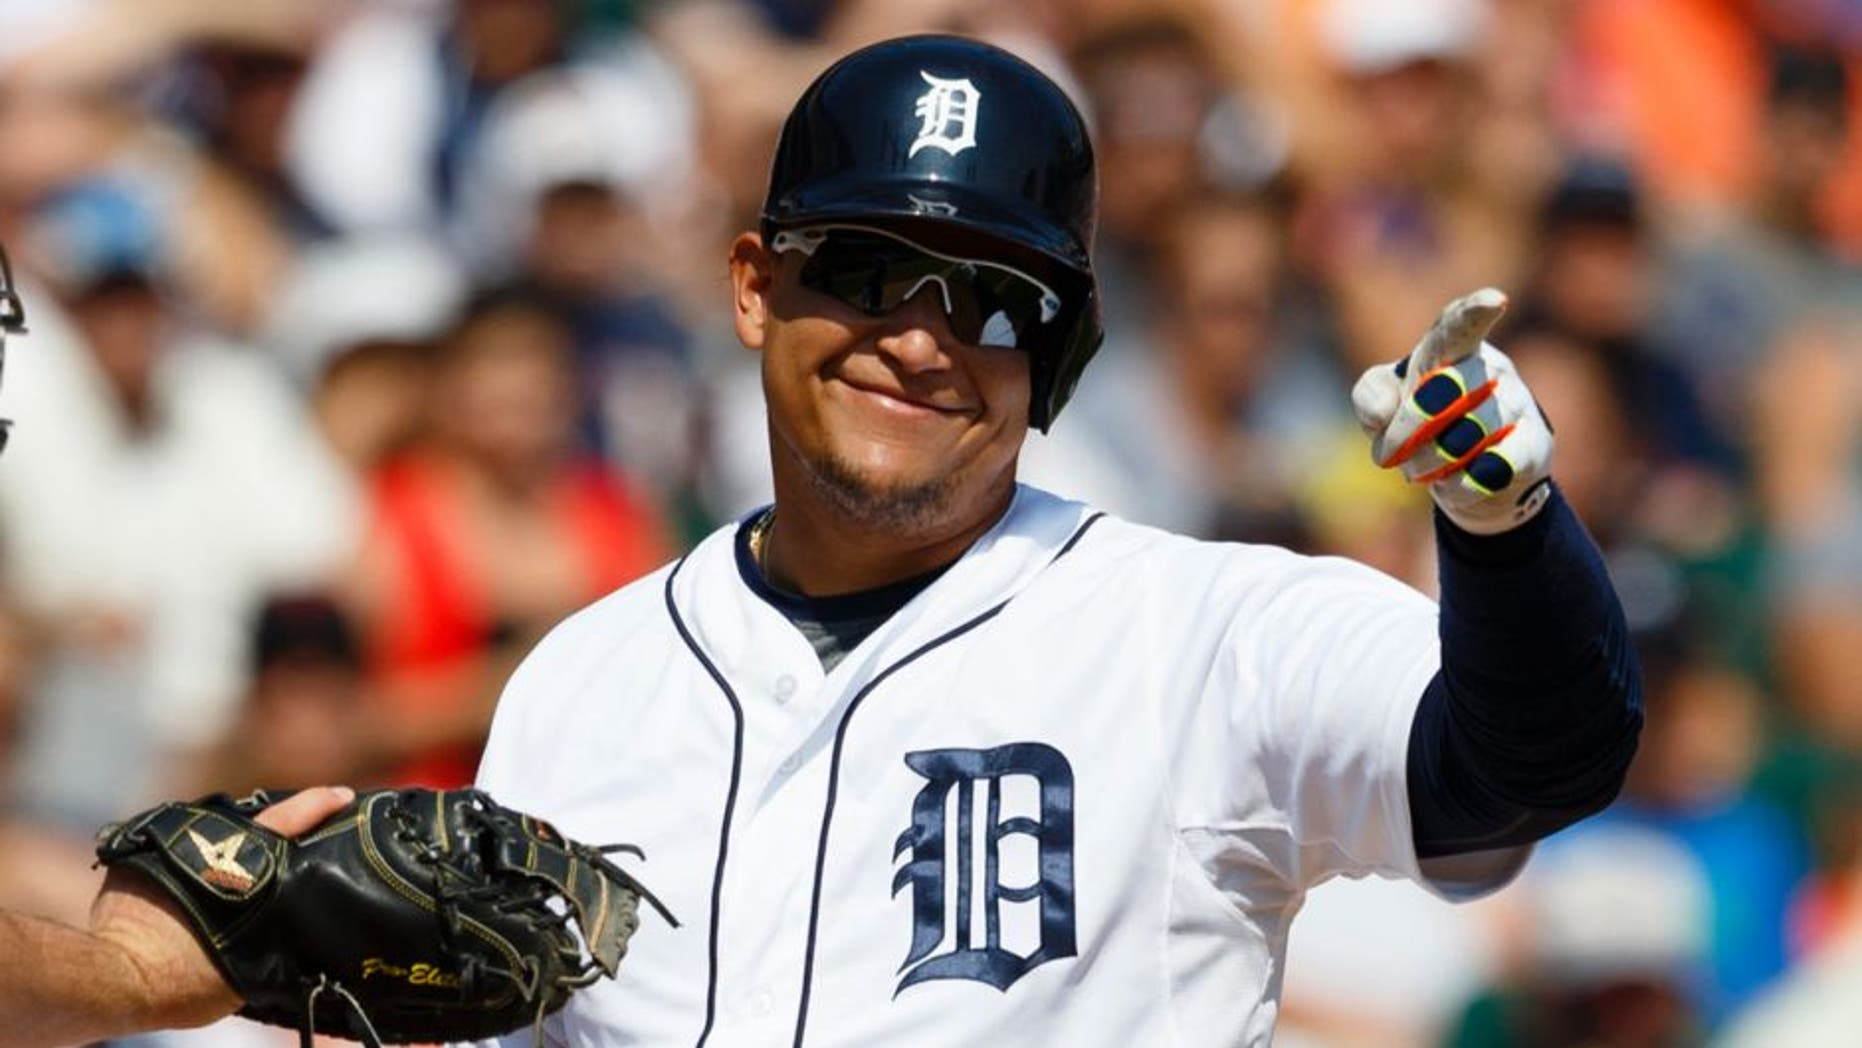 Aug 23, 2015; Detroit, MI, USA; Detroit Tigers designated hitter Miguel Cabrera (24) reacts to a called swing by first base umpire Ron Kulpa (not pictured) as Texas Rangers catcher Chris Gimenez (38) tags him in the seventh inning at Comerica Park. Mandatory Credit: Rick Osentoski-USA TODAY Sports